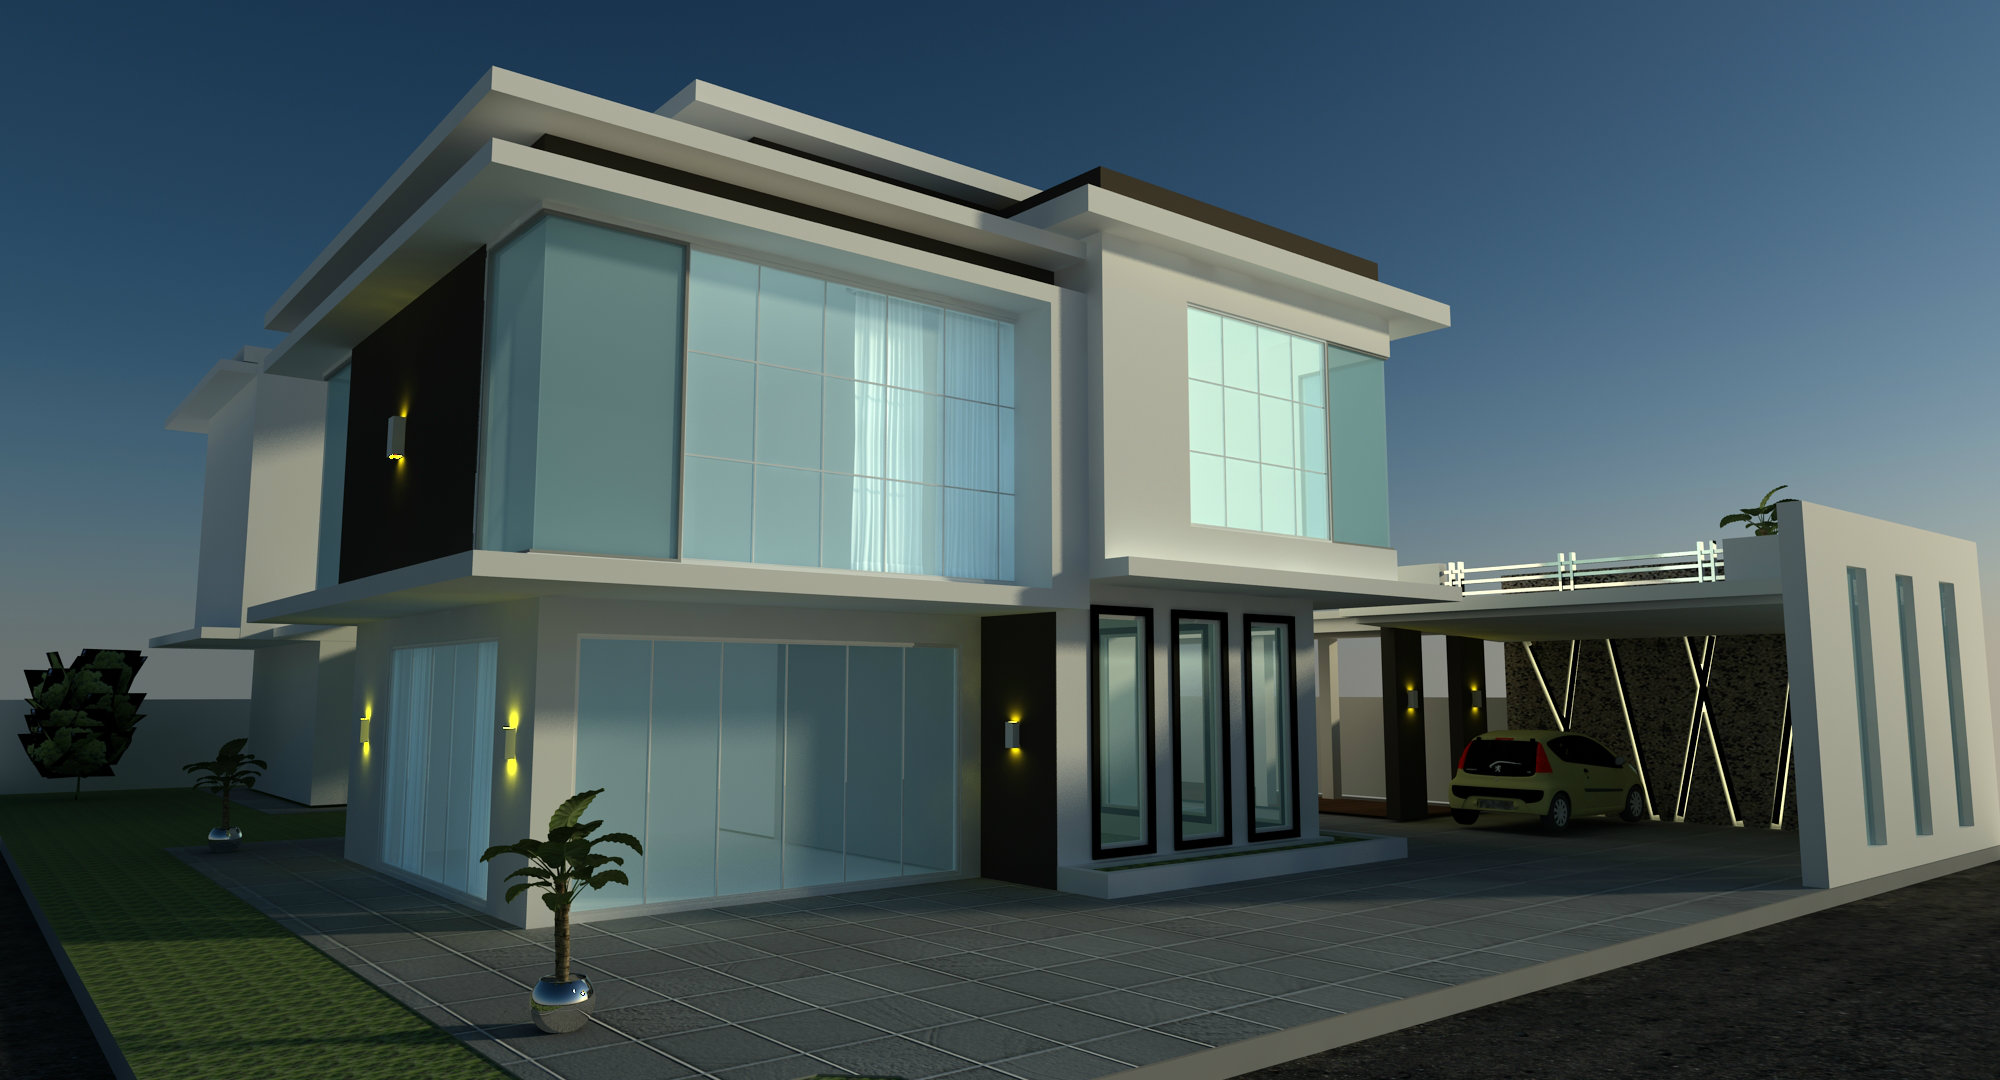 Design for bungalow house project jb interior design for House design malaysia architecture